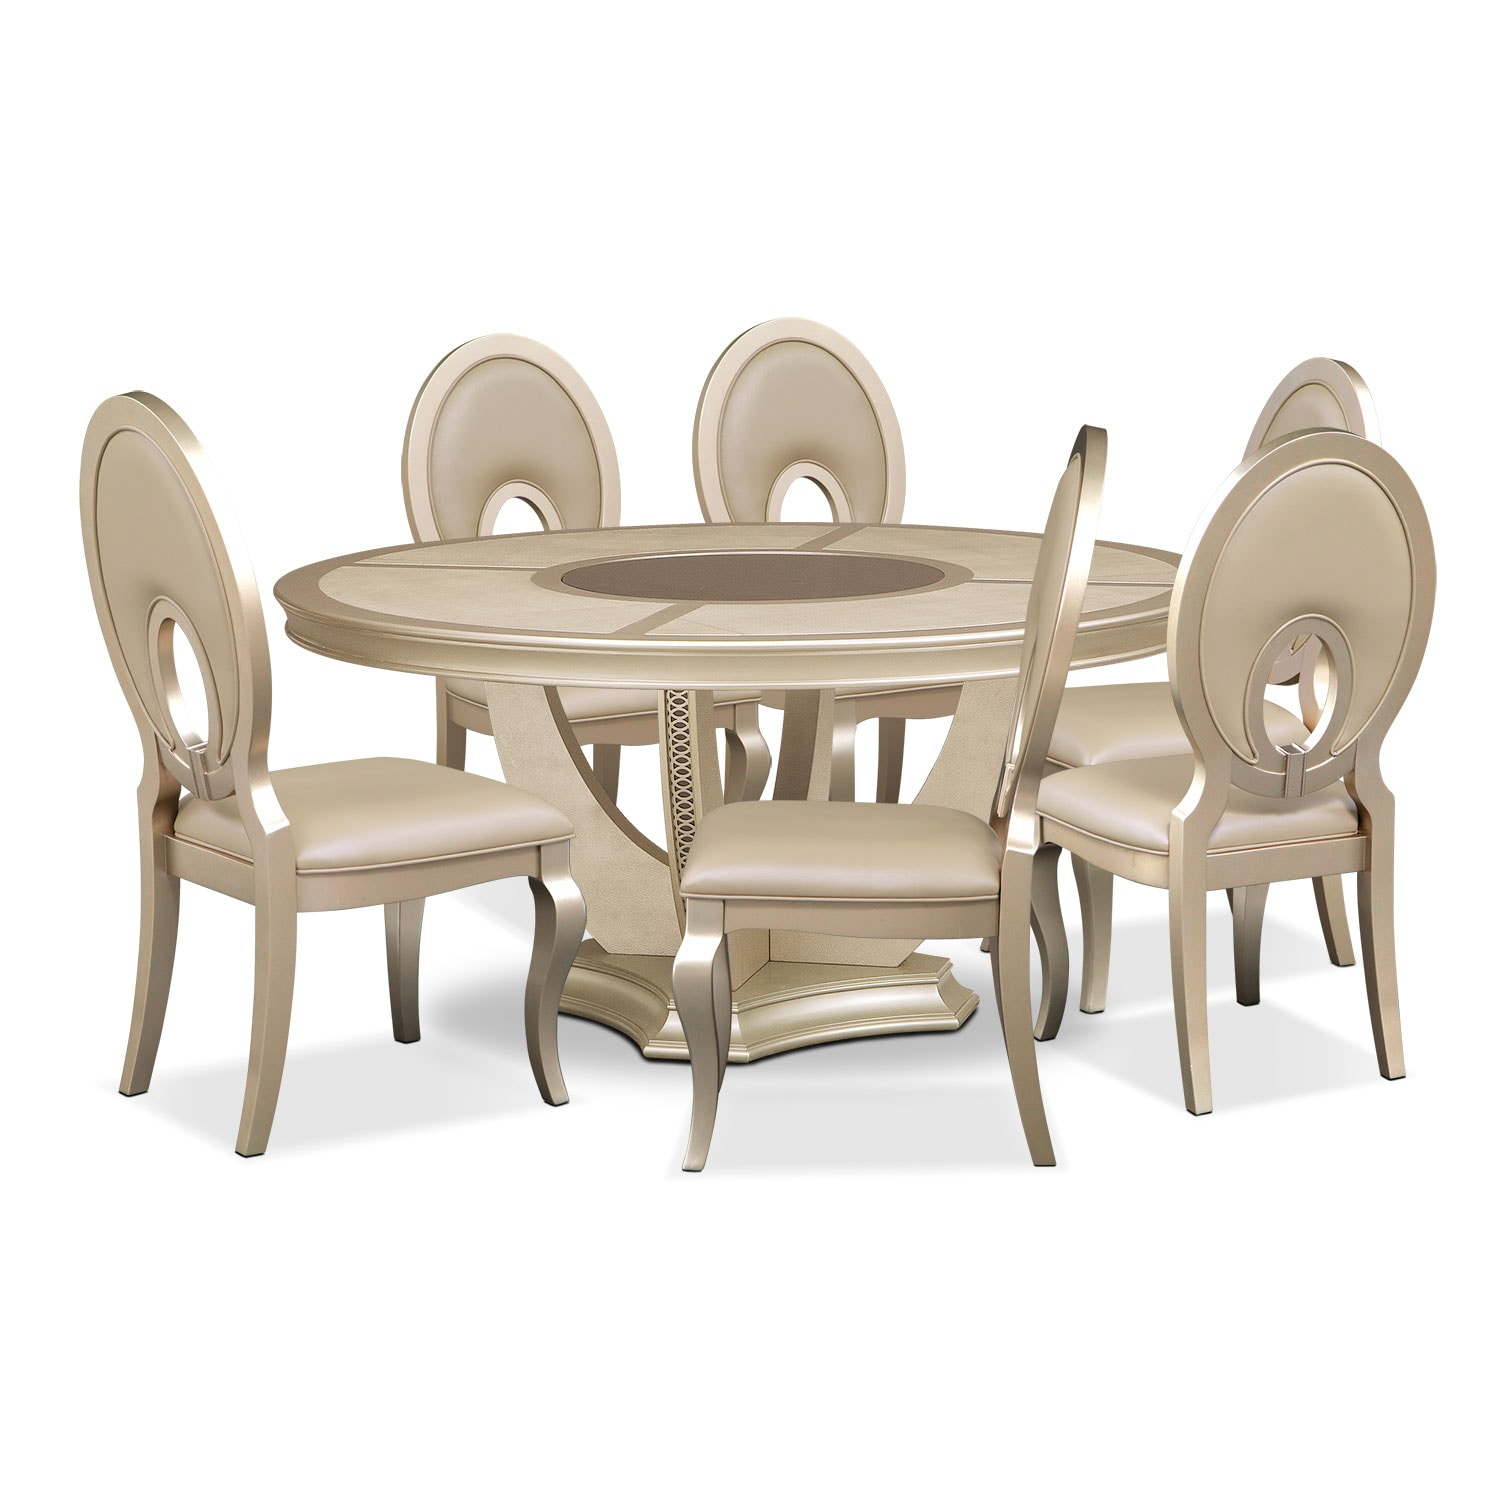 Allegro Round Table and 6 Chairs - Platinum